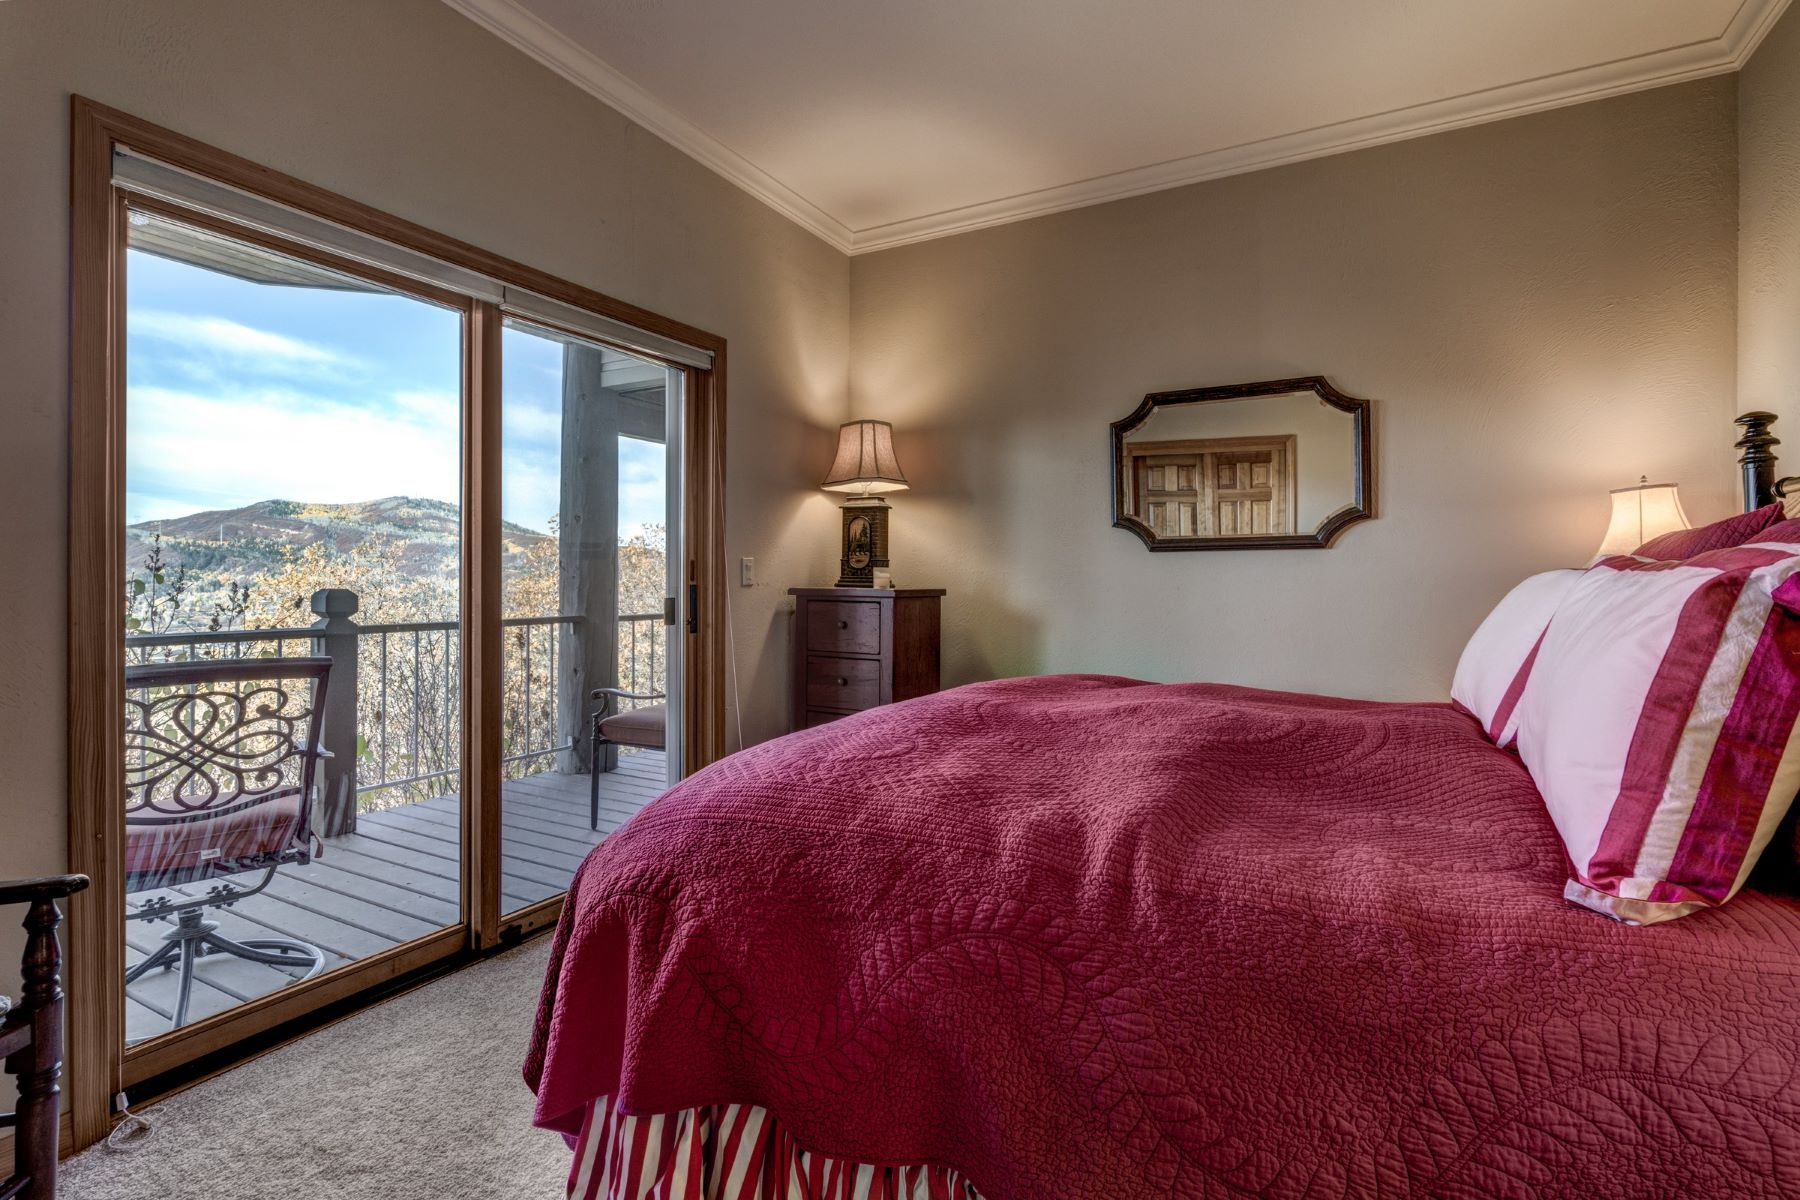 Additional photo for property listing at Overlook Ski Home 1297 Overlook Drive Steamboat Springs, Colorado 80487 United States